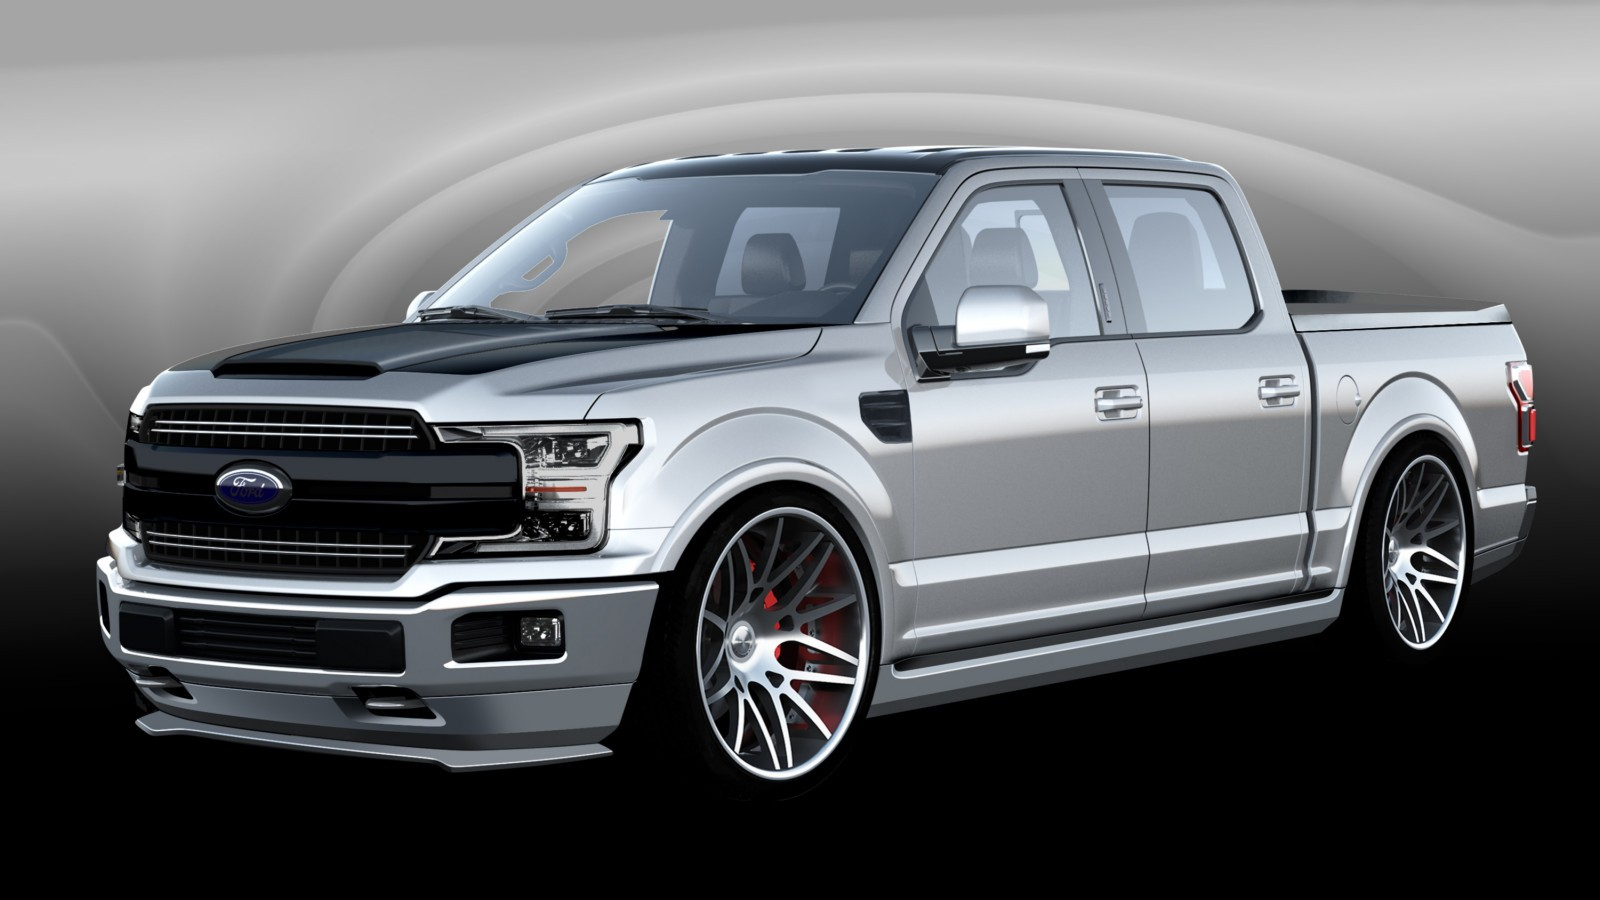 2018 Ford F-150 Lariat SuperCrew created by Air Design